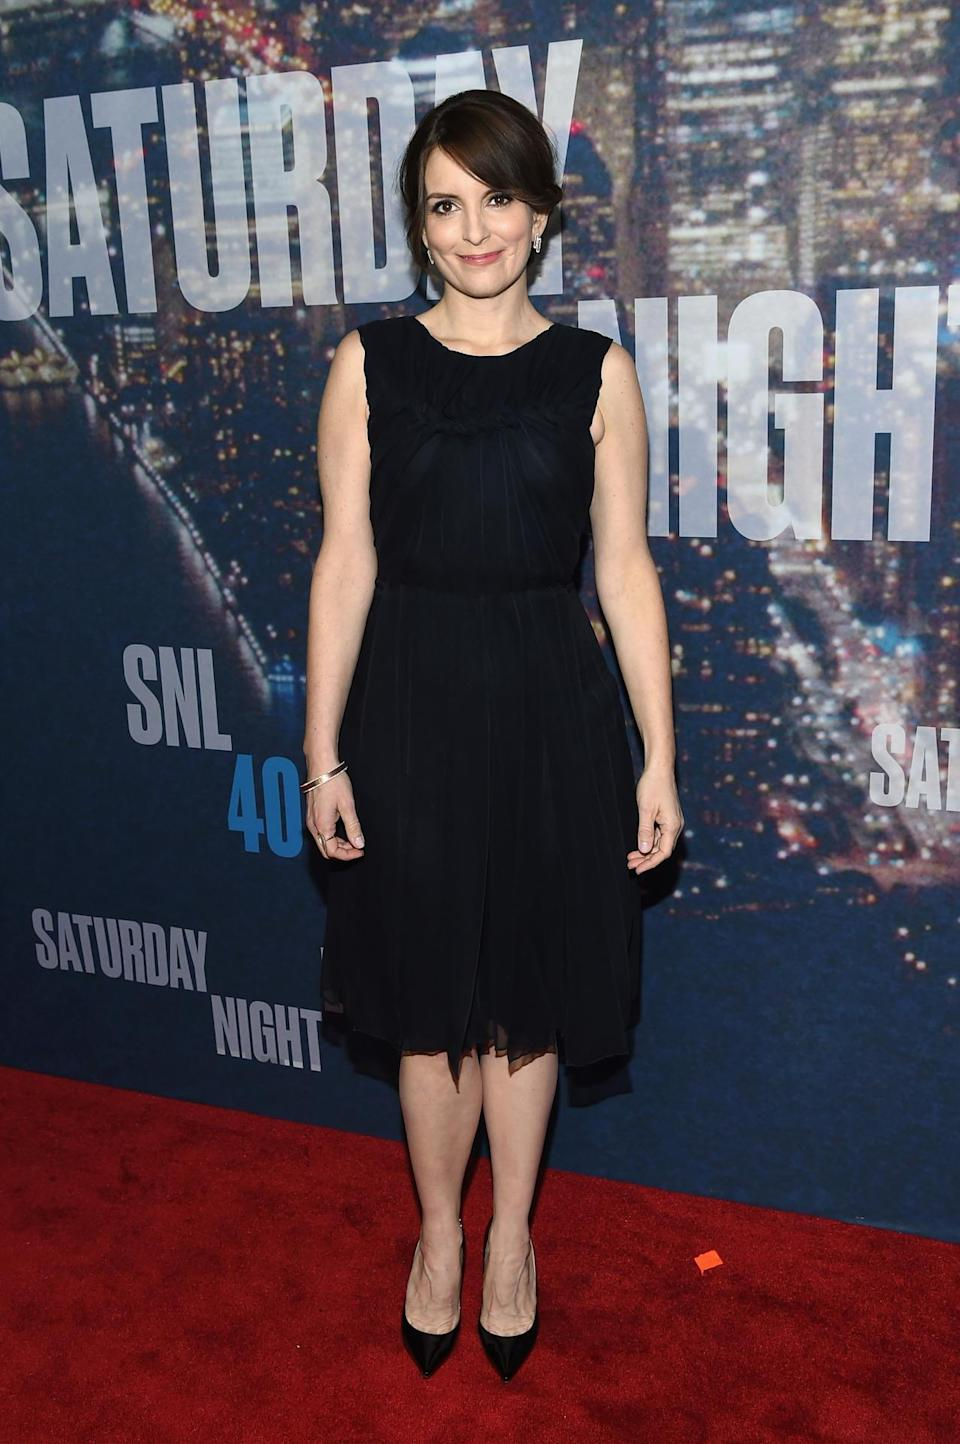 Tina Fey keeps it simple in a little black dress before making multiple costume changes such as into her iconic Sarah Palin getup.